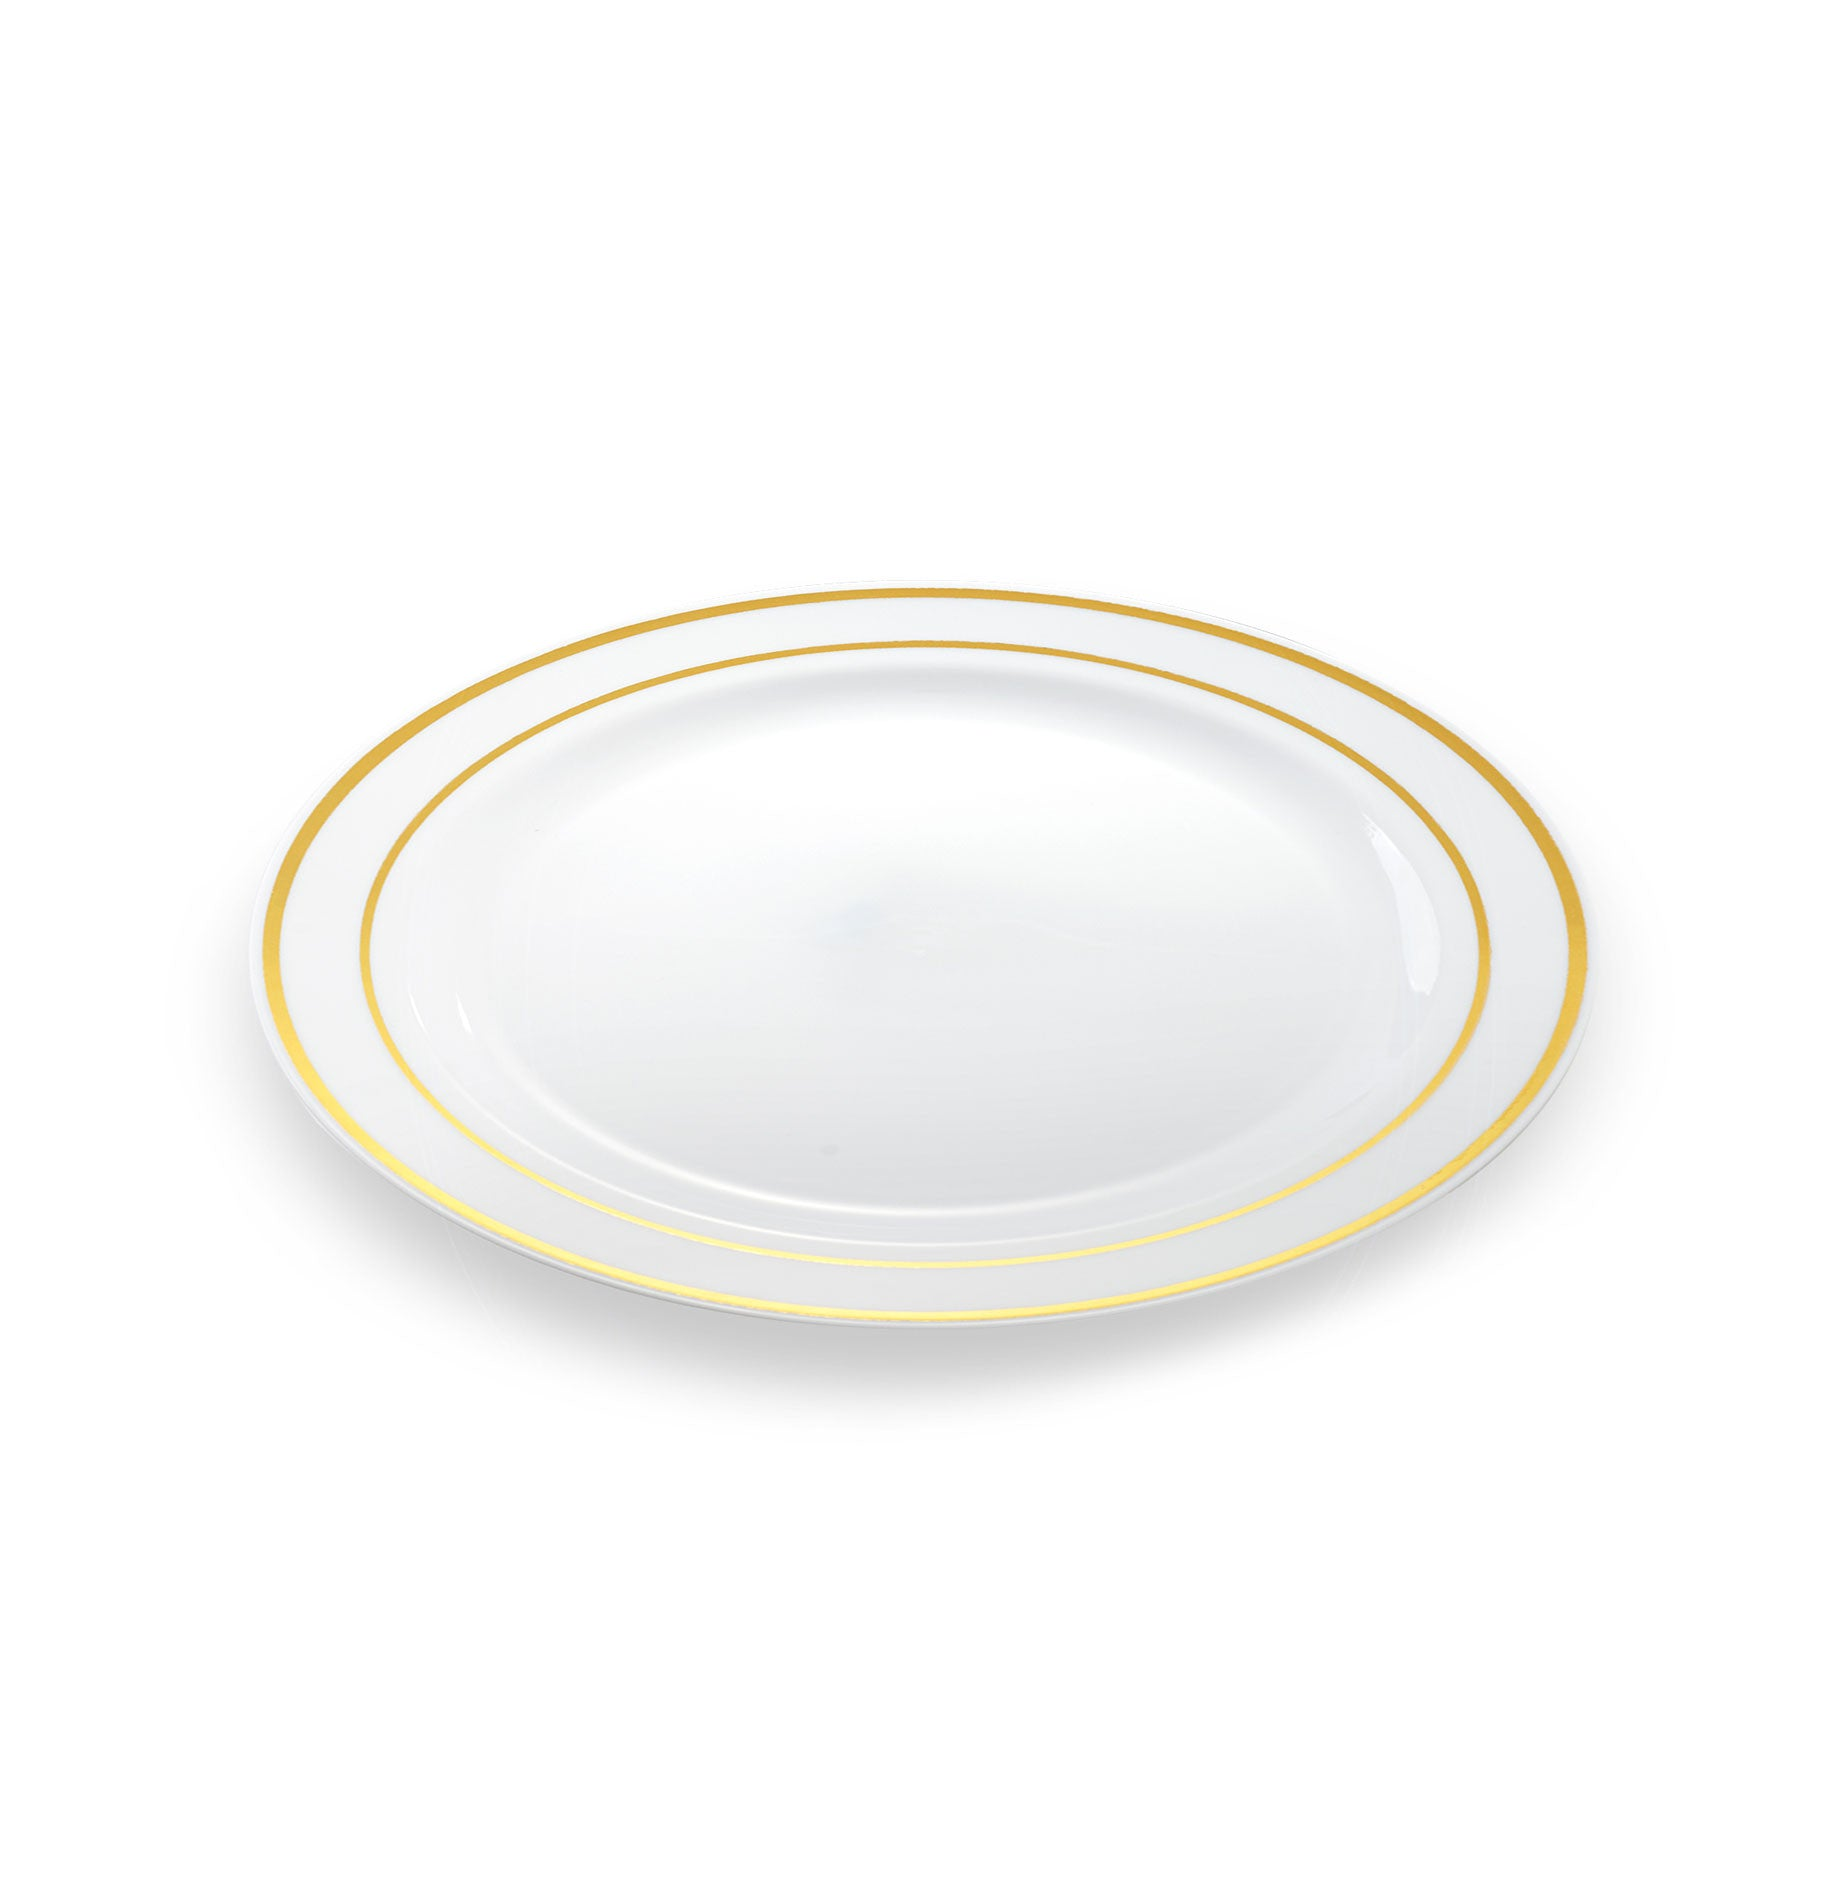 sc 1 st  Simply Disposables & 20 x Small Disposable Plates | Gold Rim 7.5